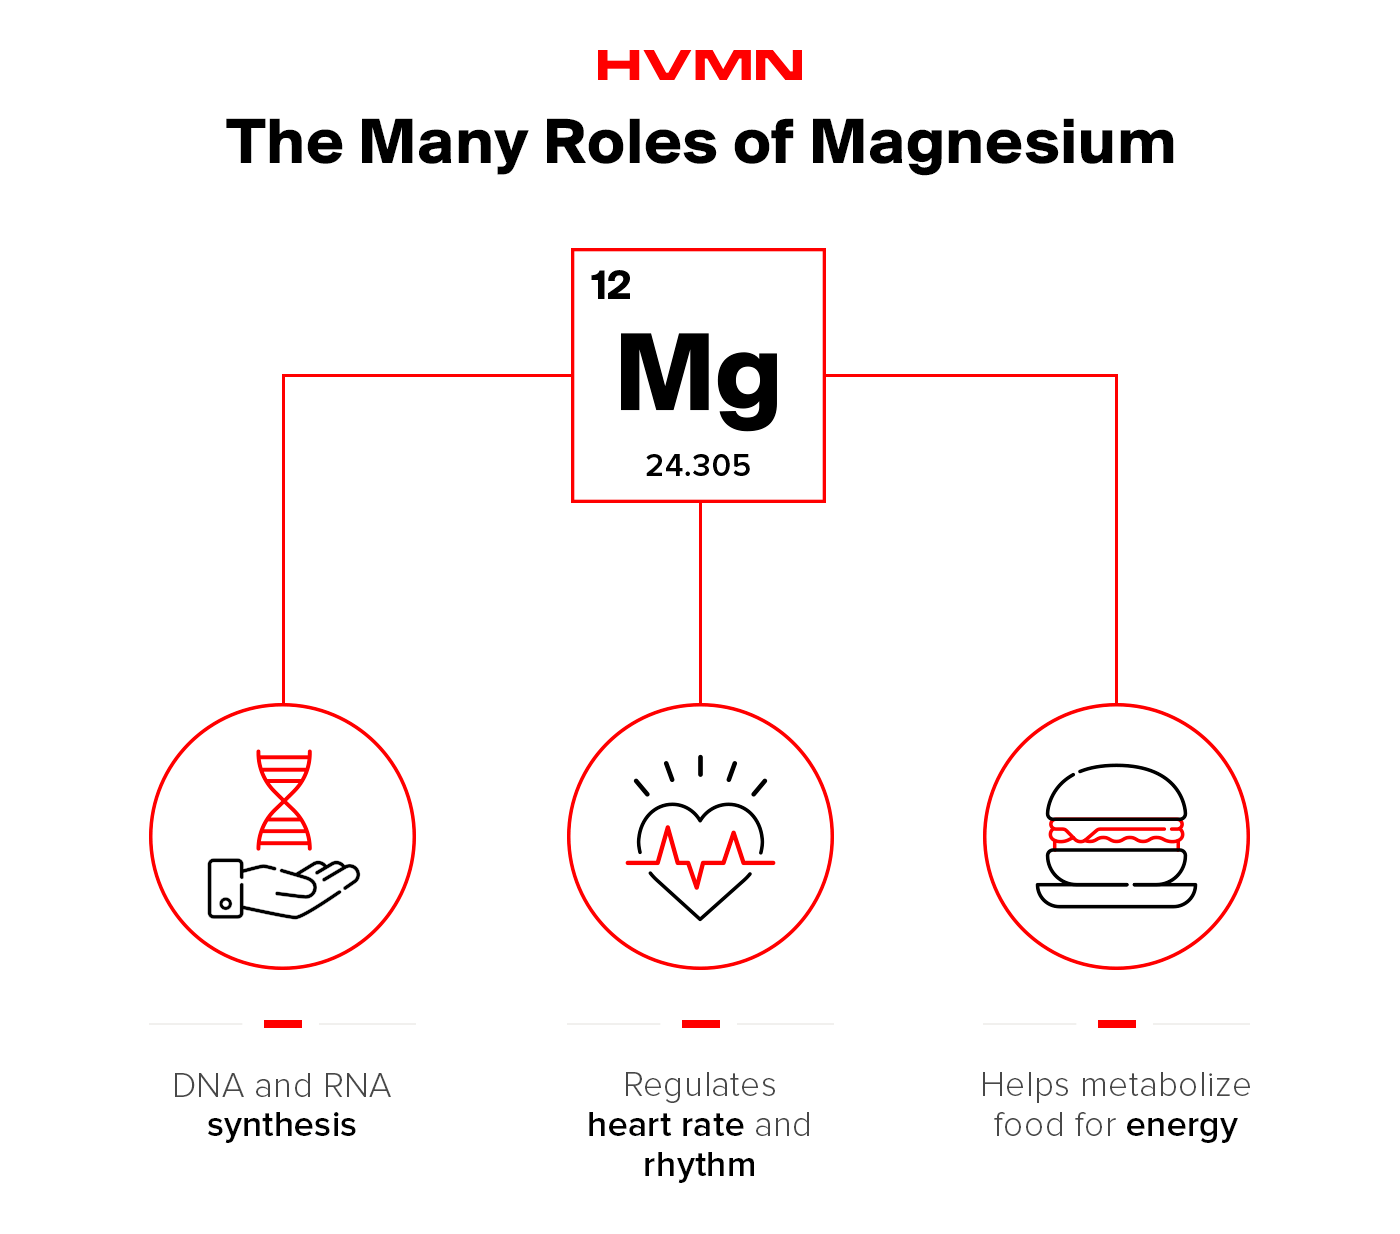 Magnesium plays many roles in the body.